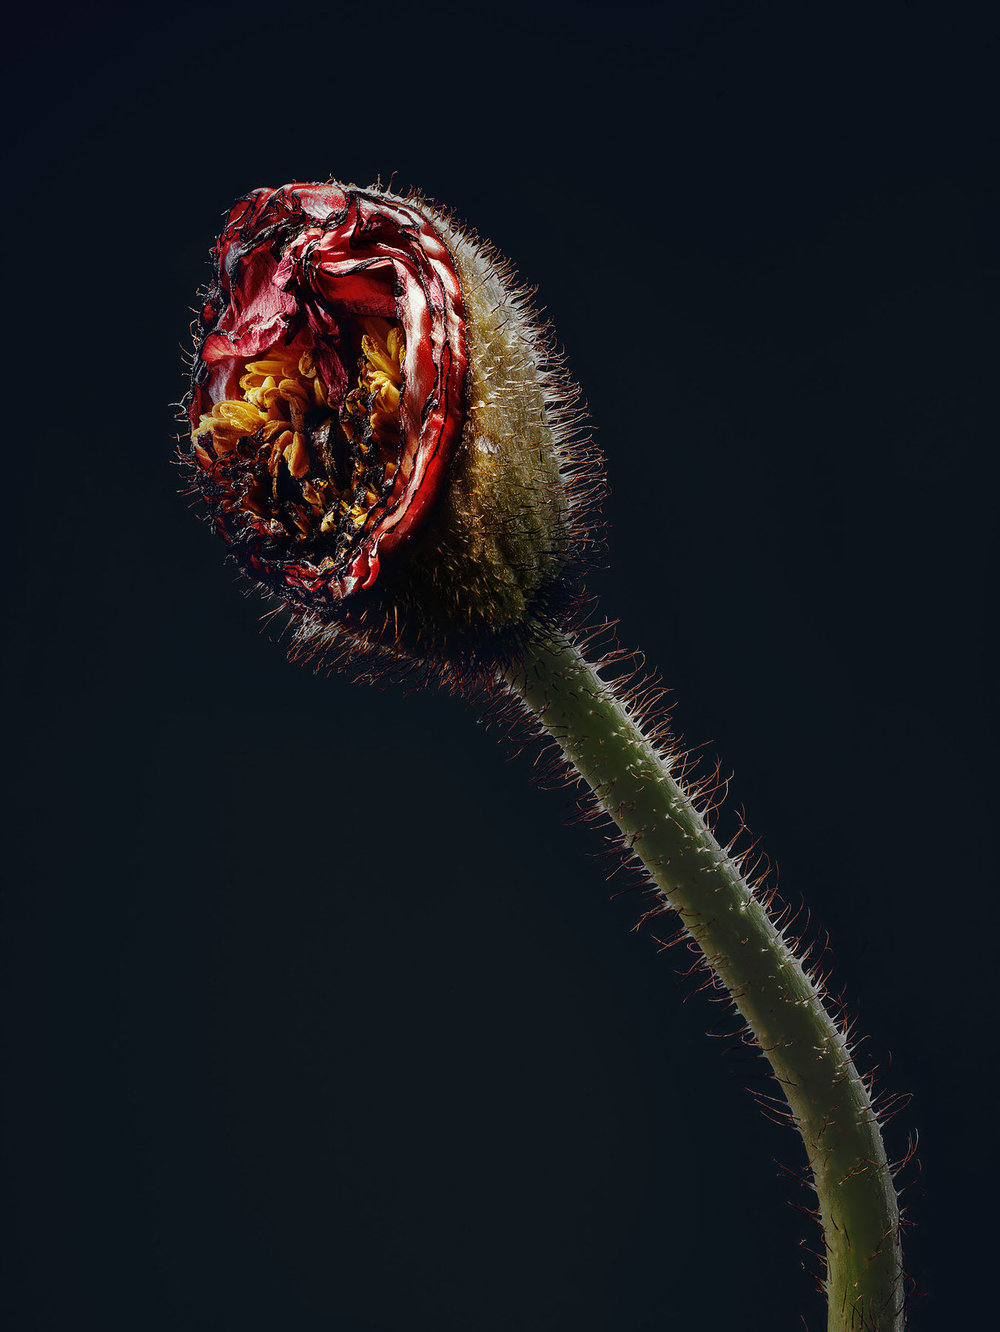 Simon_Puschmann_assaulted-flowers_papaver_01.jpg